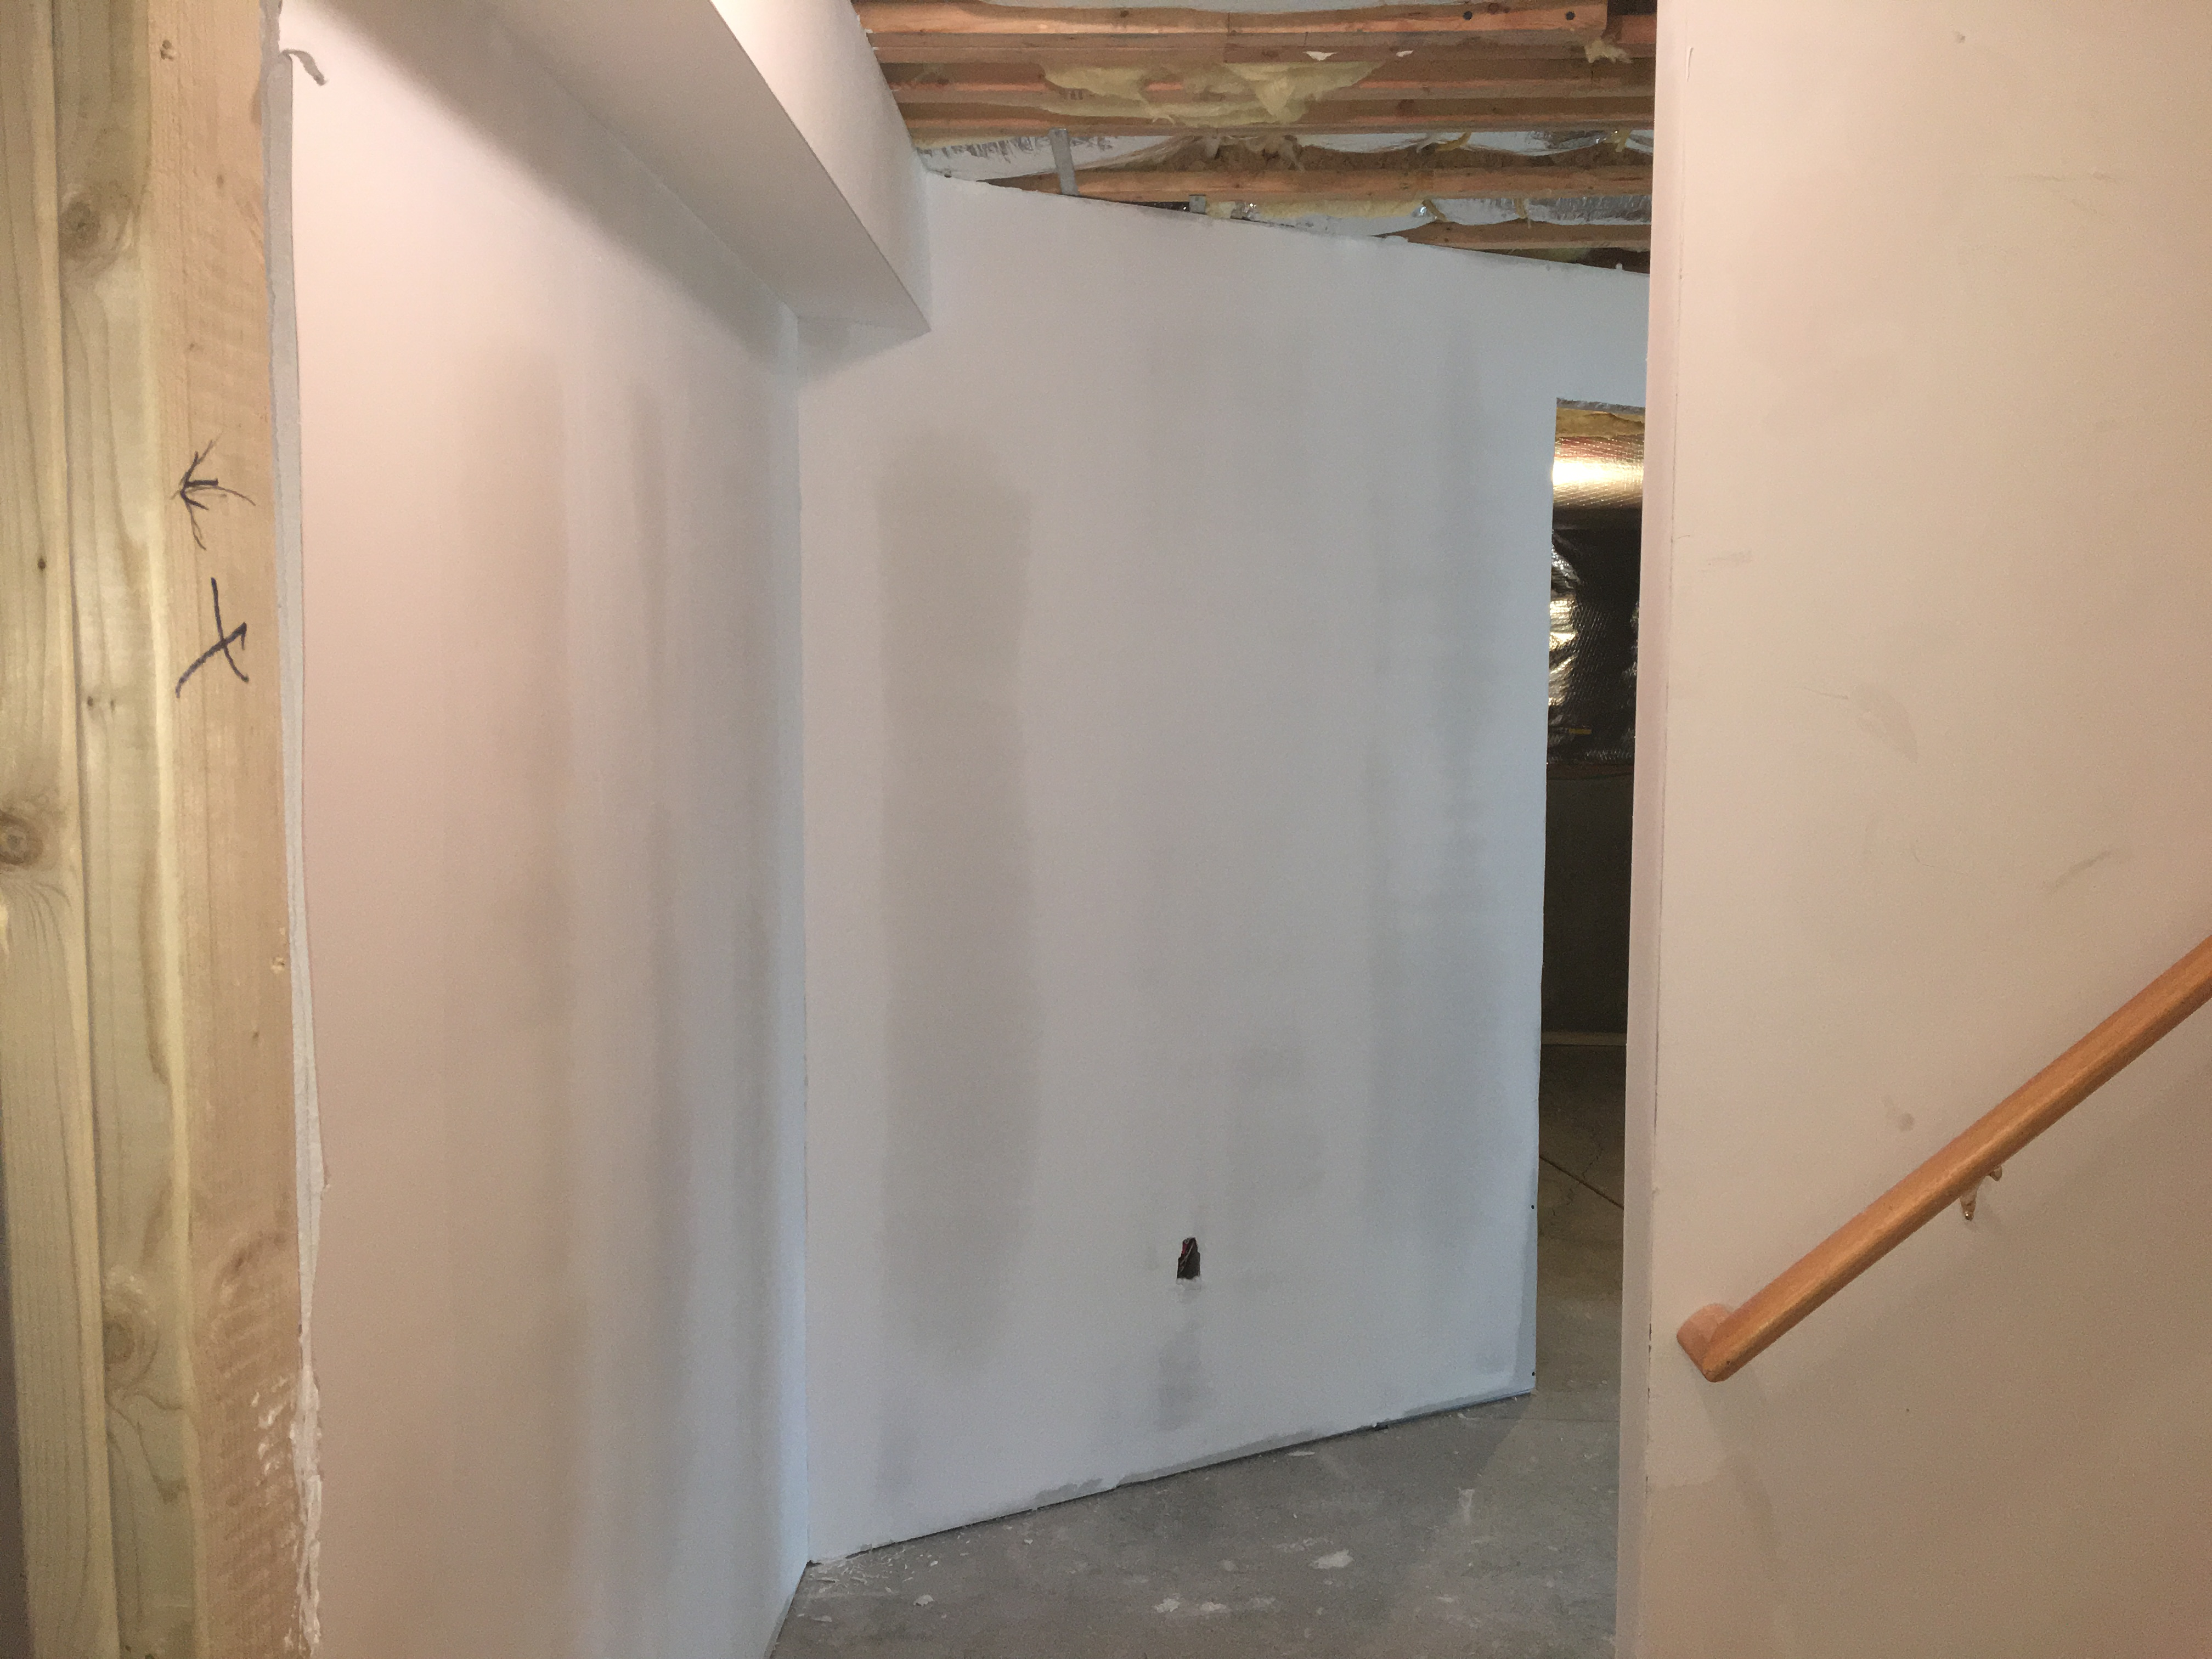 Finish basement skim coat level five-c38e3619-568d-4bd4-a8a2-6e7eb9d12720.jpeg